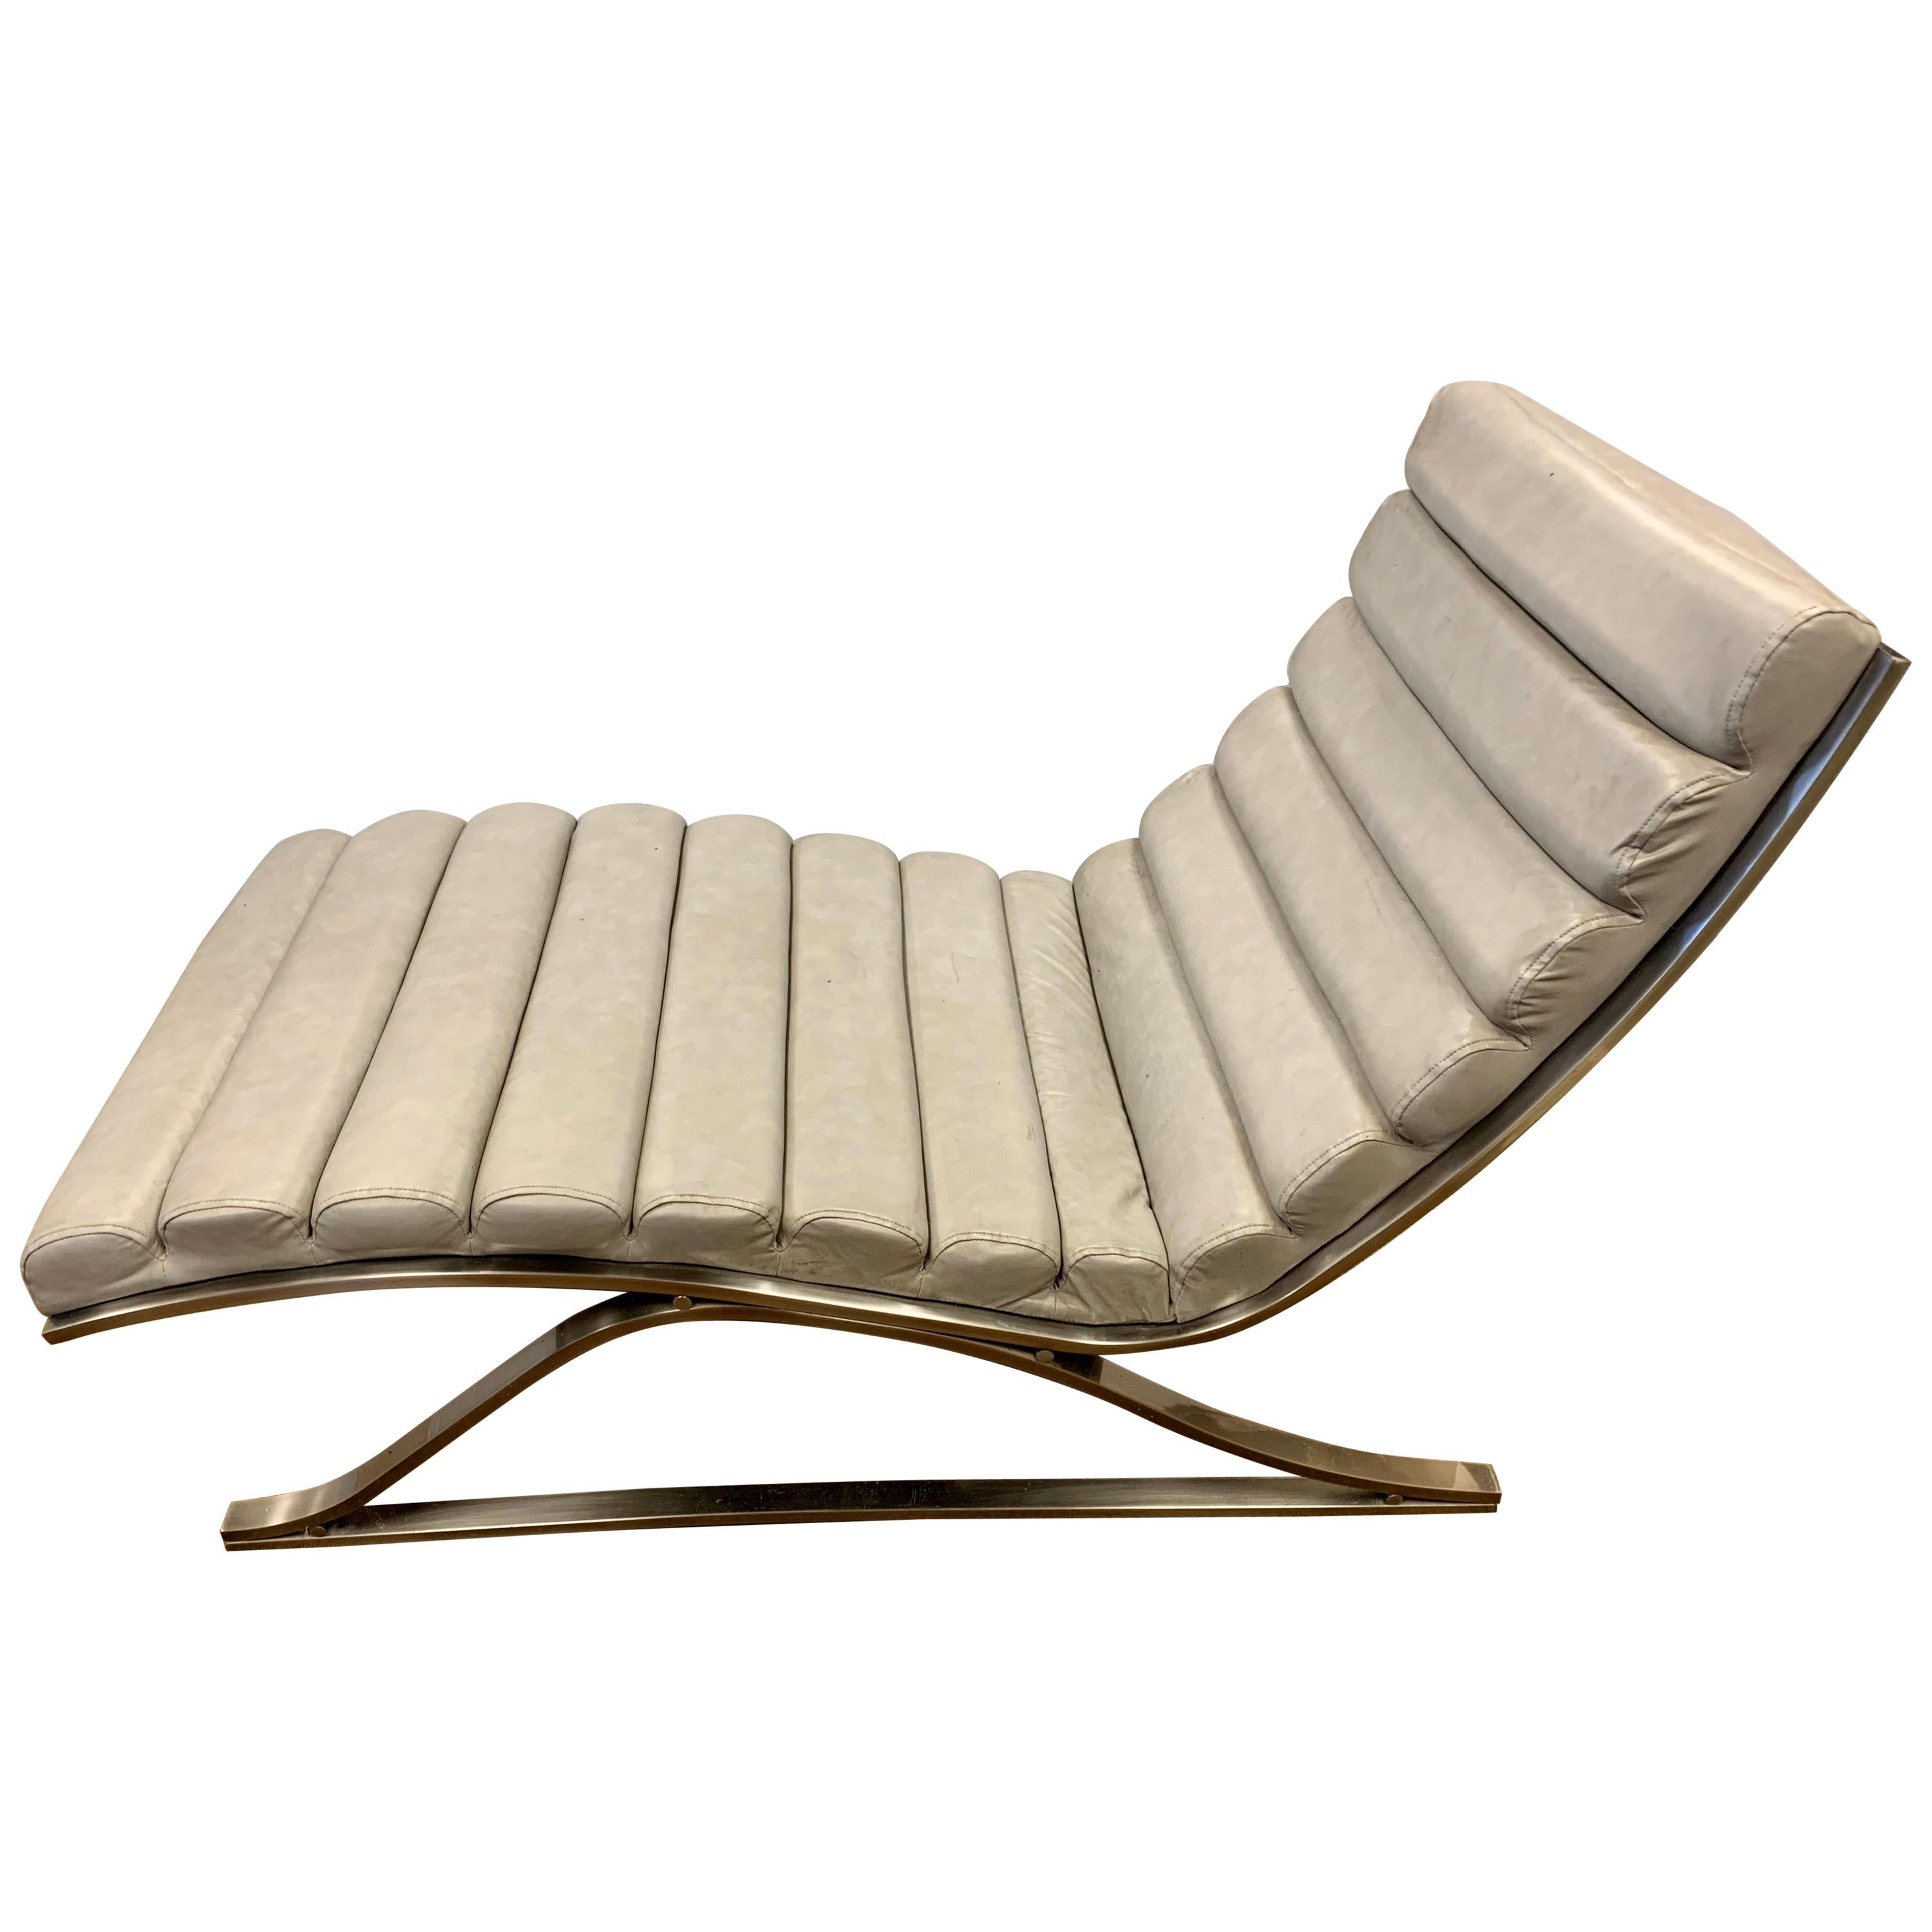 Signed DIA Design Institute America Leather Channel Back Chaise